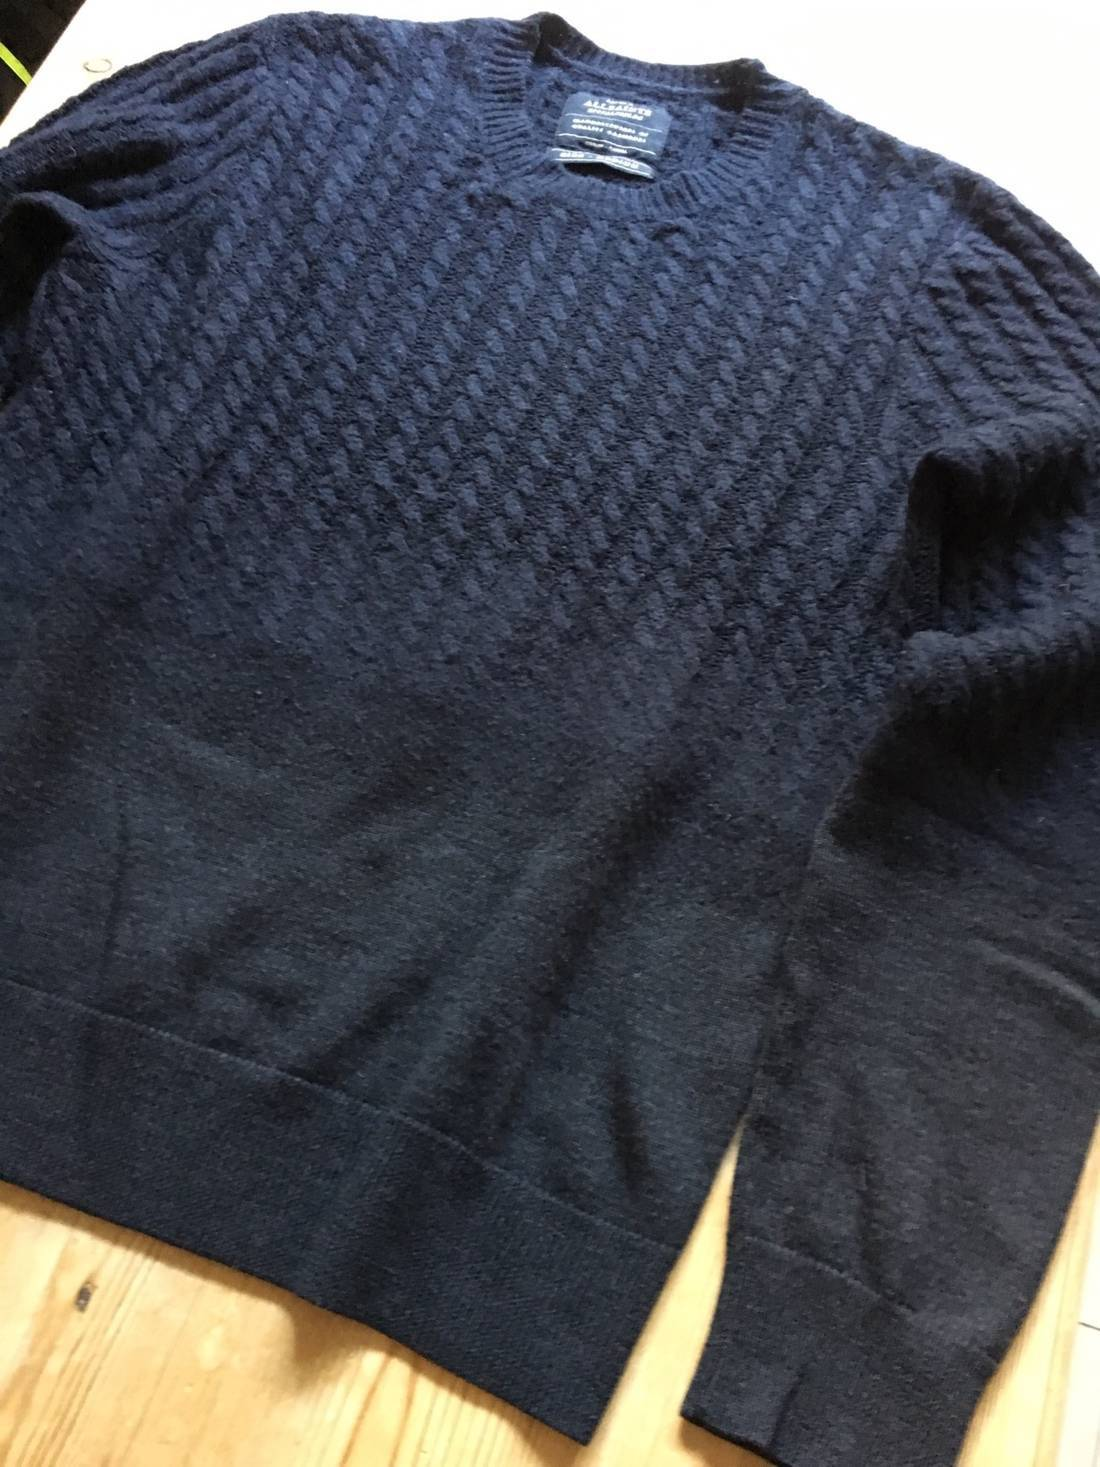 Allsaints Navy Blue Wool Cashmere Blend Gradient Cable Knit Sweater